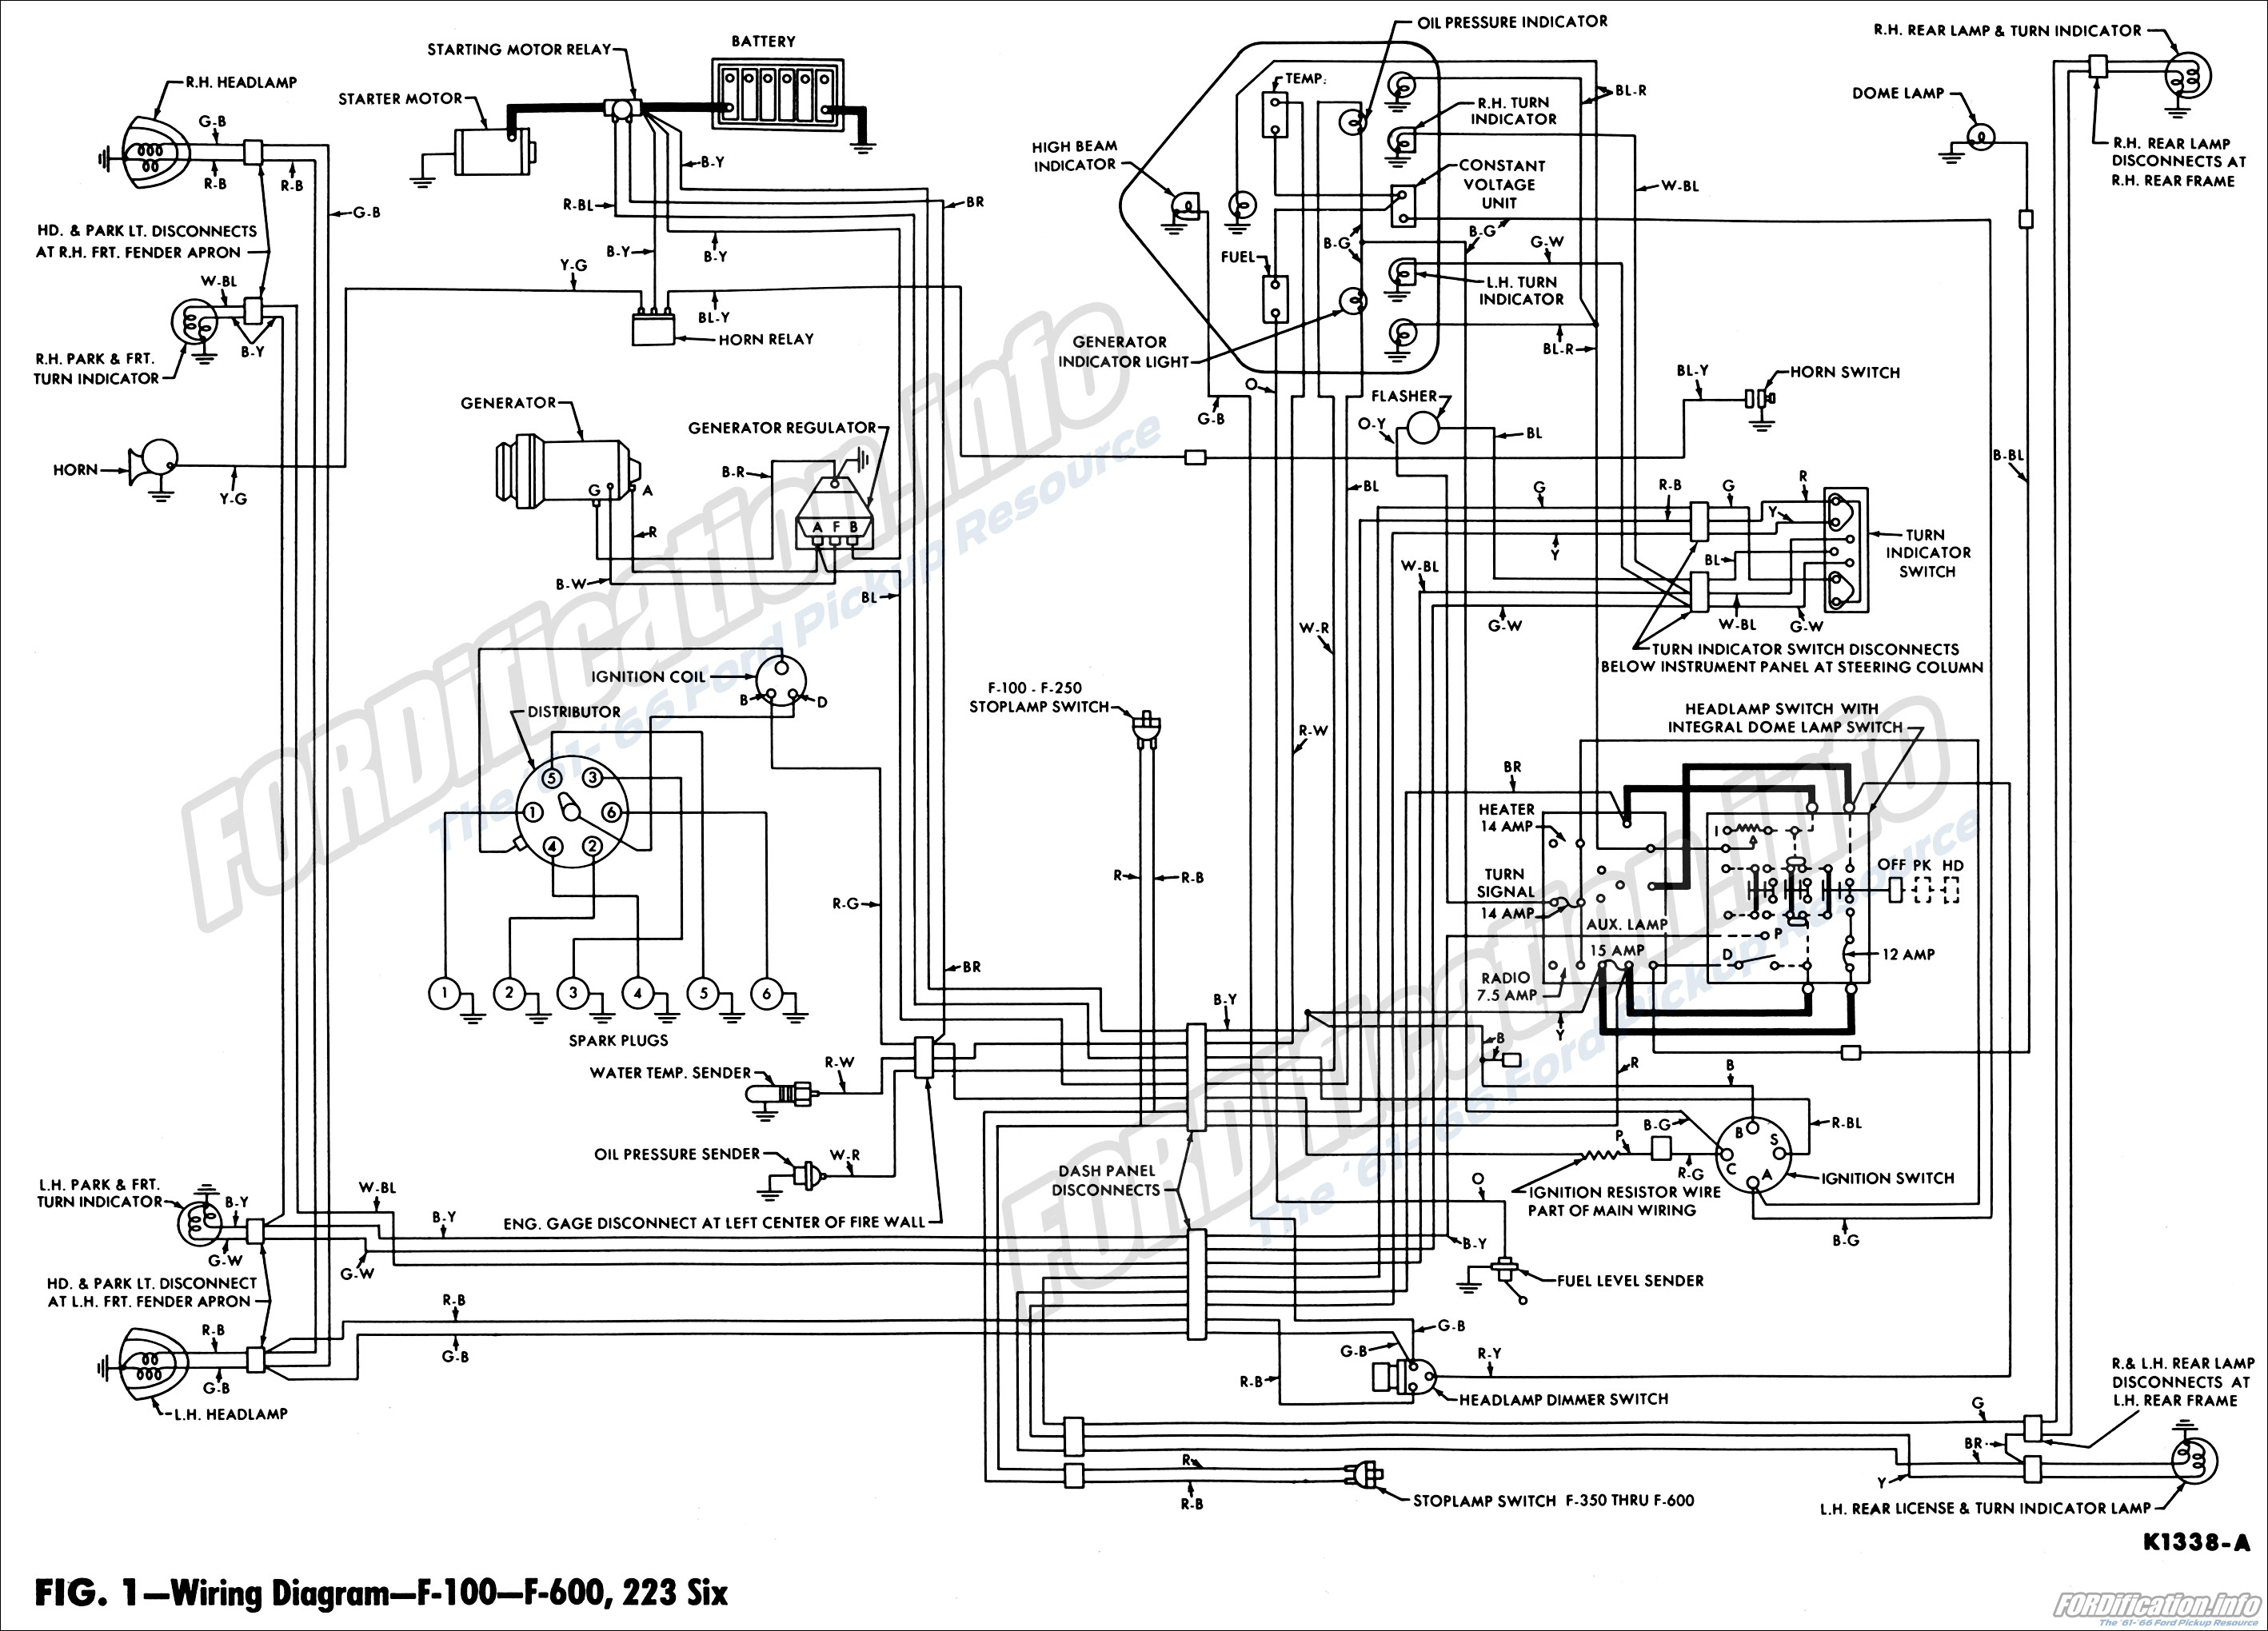 62 Ford F100 Wiring Diagram Ford F100 Radio Wiring Ford